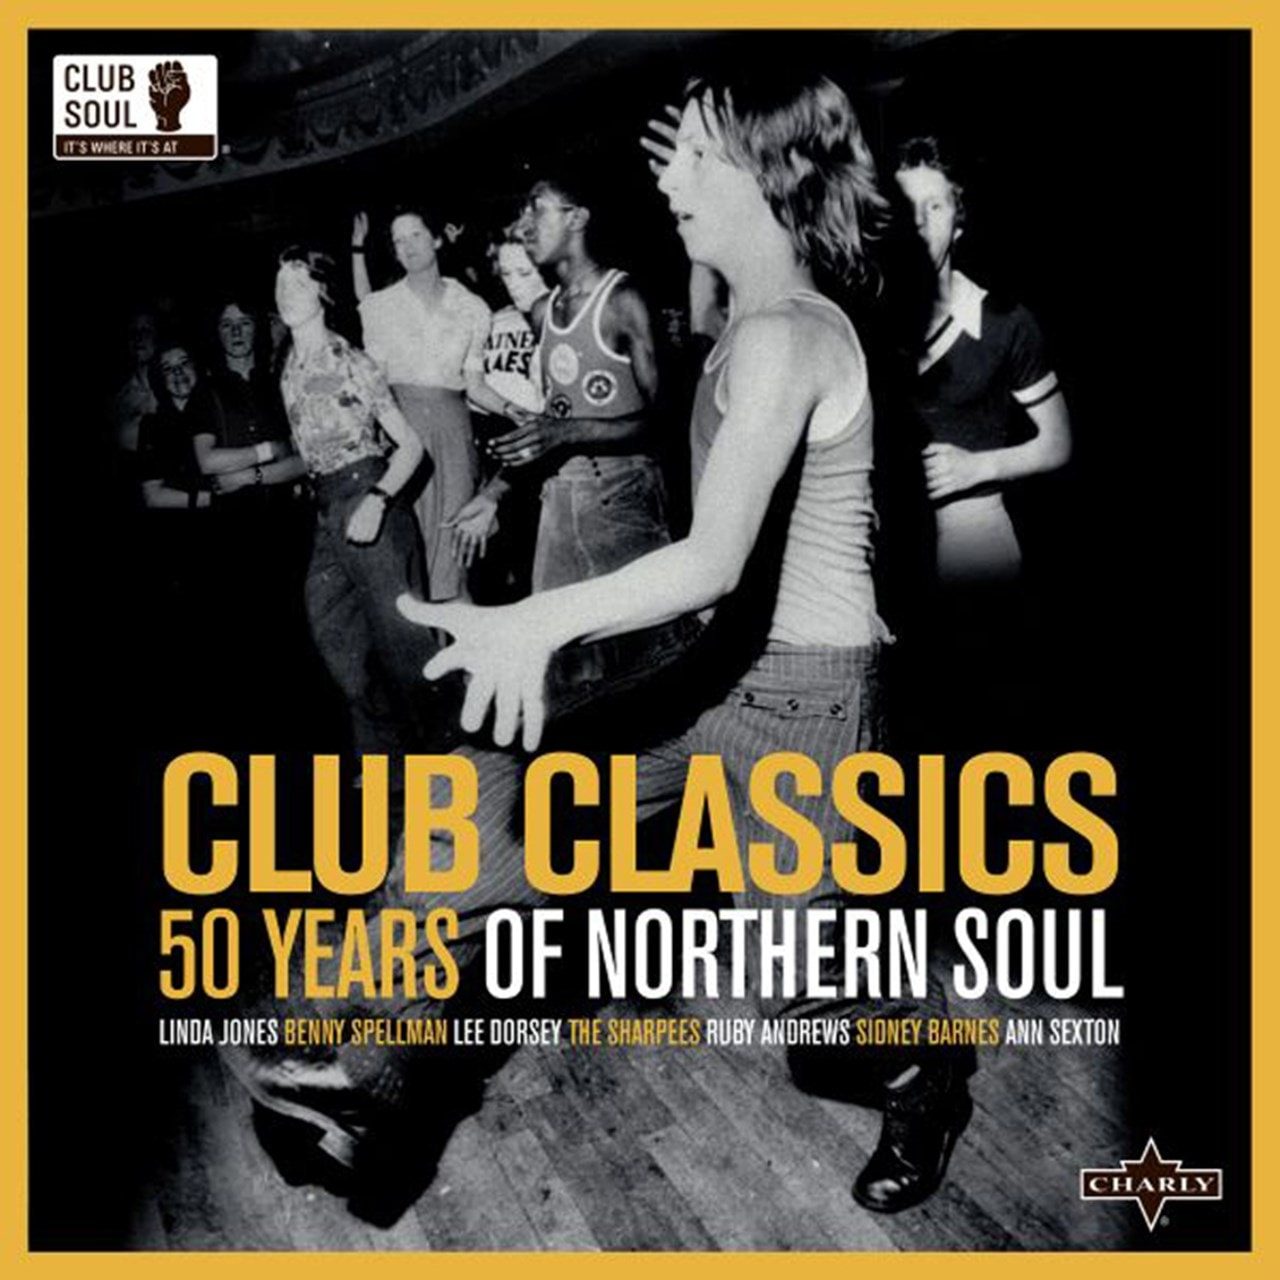 Club Classics: 50 Years of Northern Soul - 1